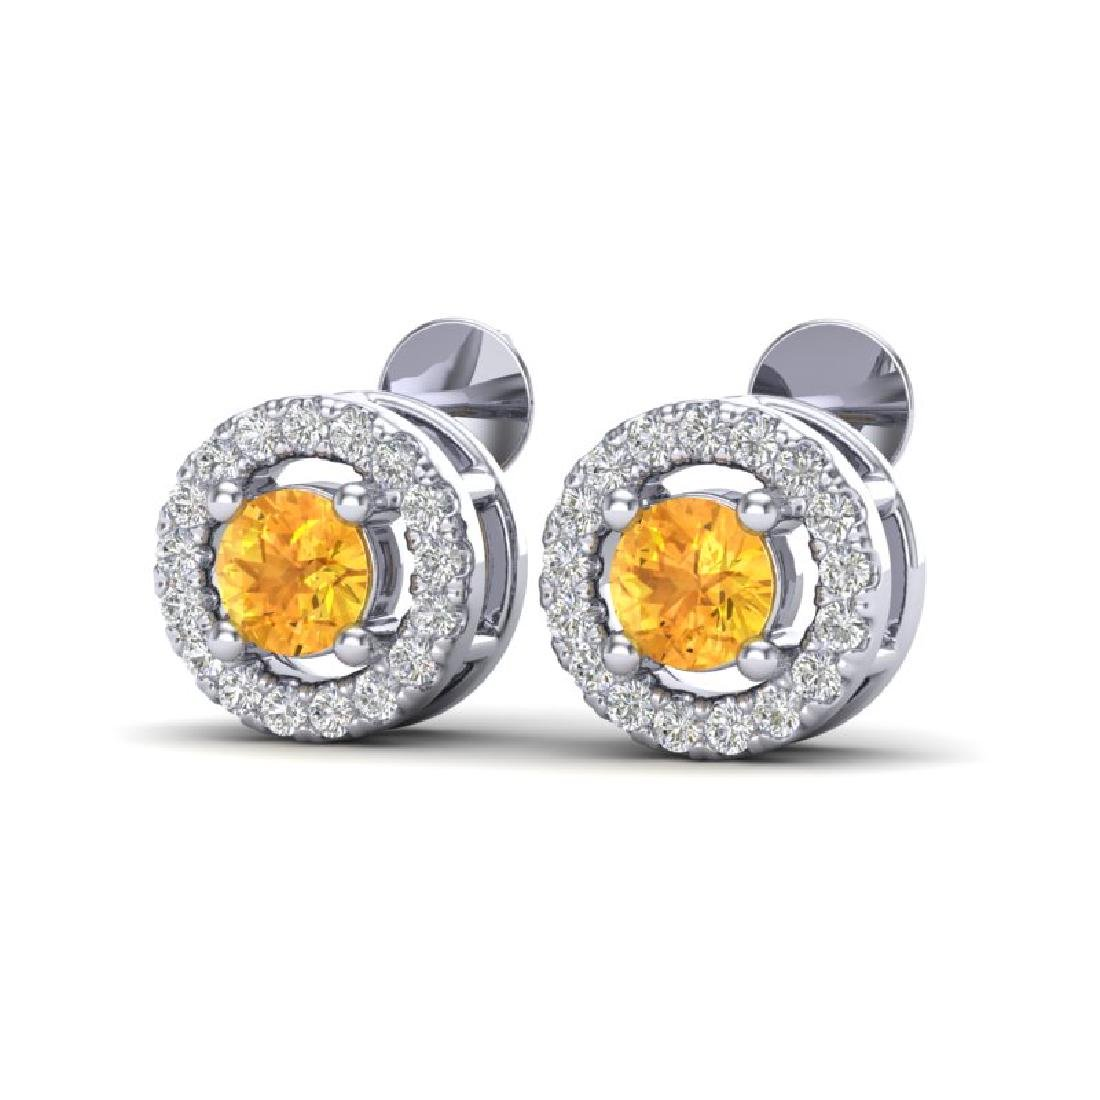 0.75 CTW Citrine & Micro Pave VS/SI Diamond Earrings